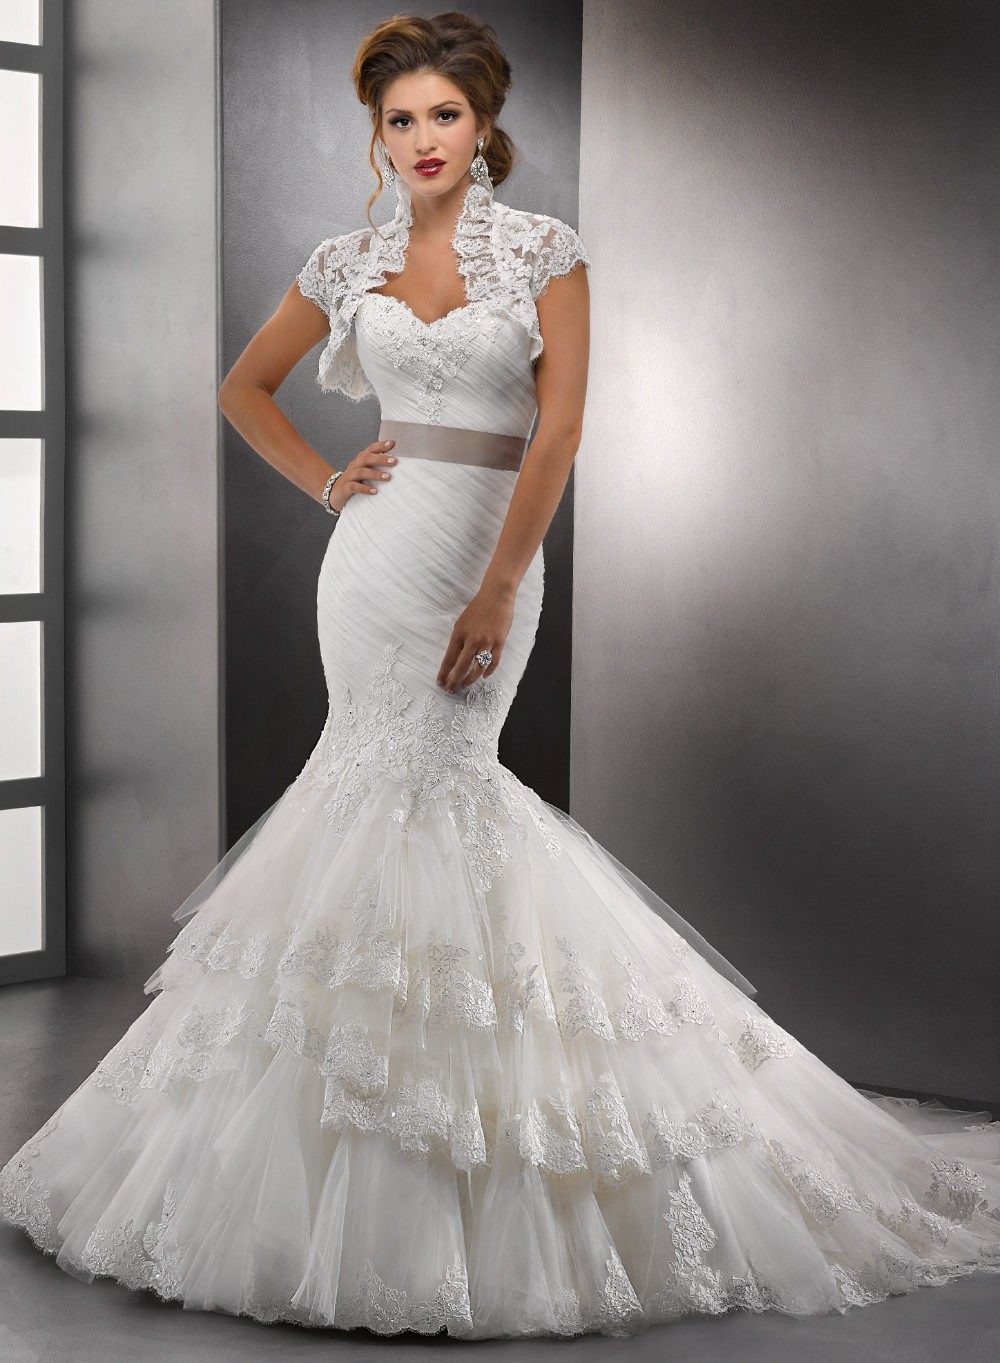 mermaid wedding gowns sweetheart neckline mermaid dress wedding Mermaid Wedding Dress With Sweetheart Neckline